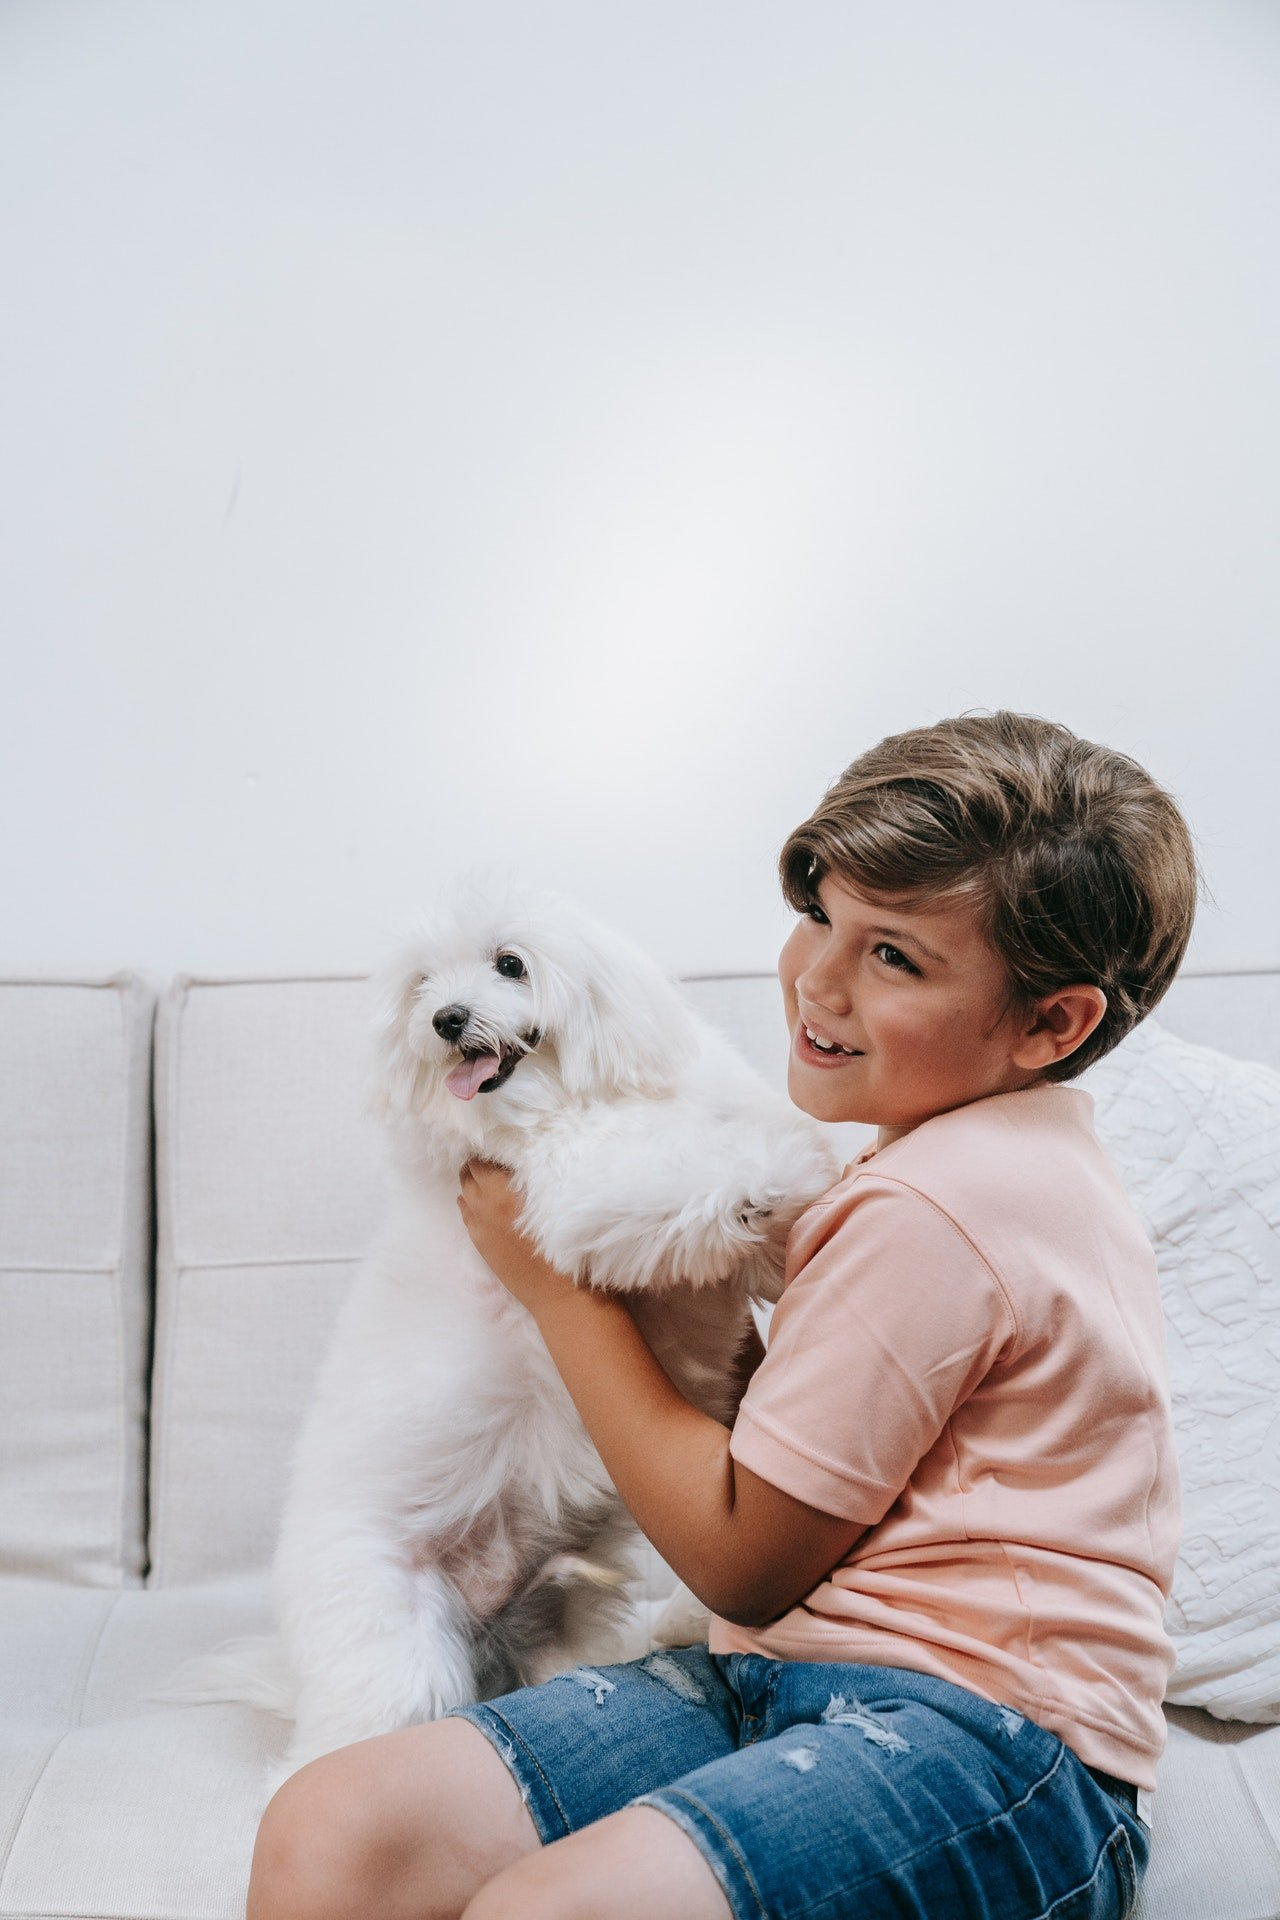 Boy sitting with a dog | Source: Pexels